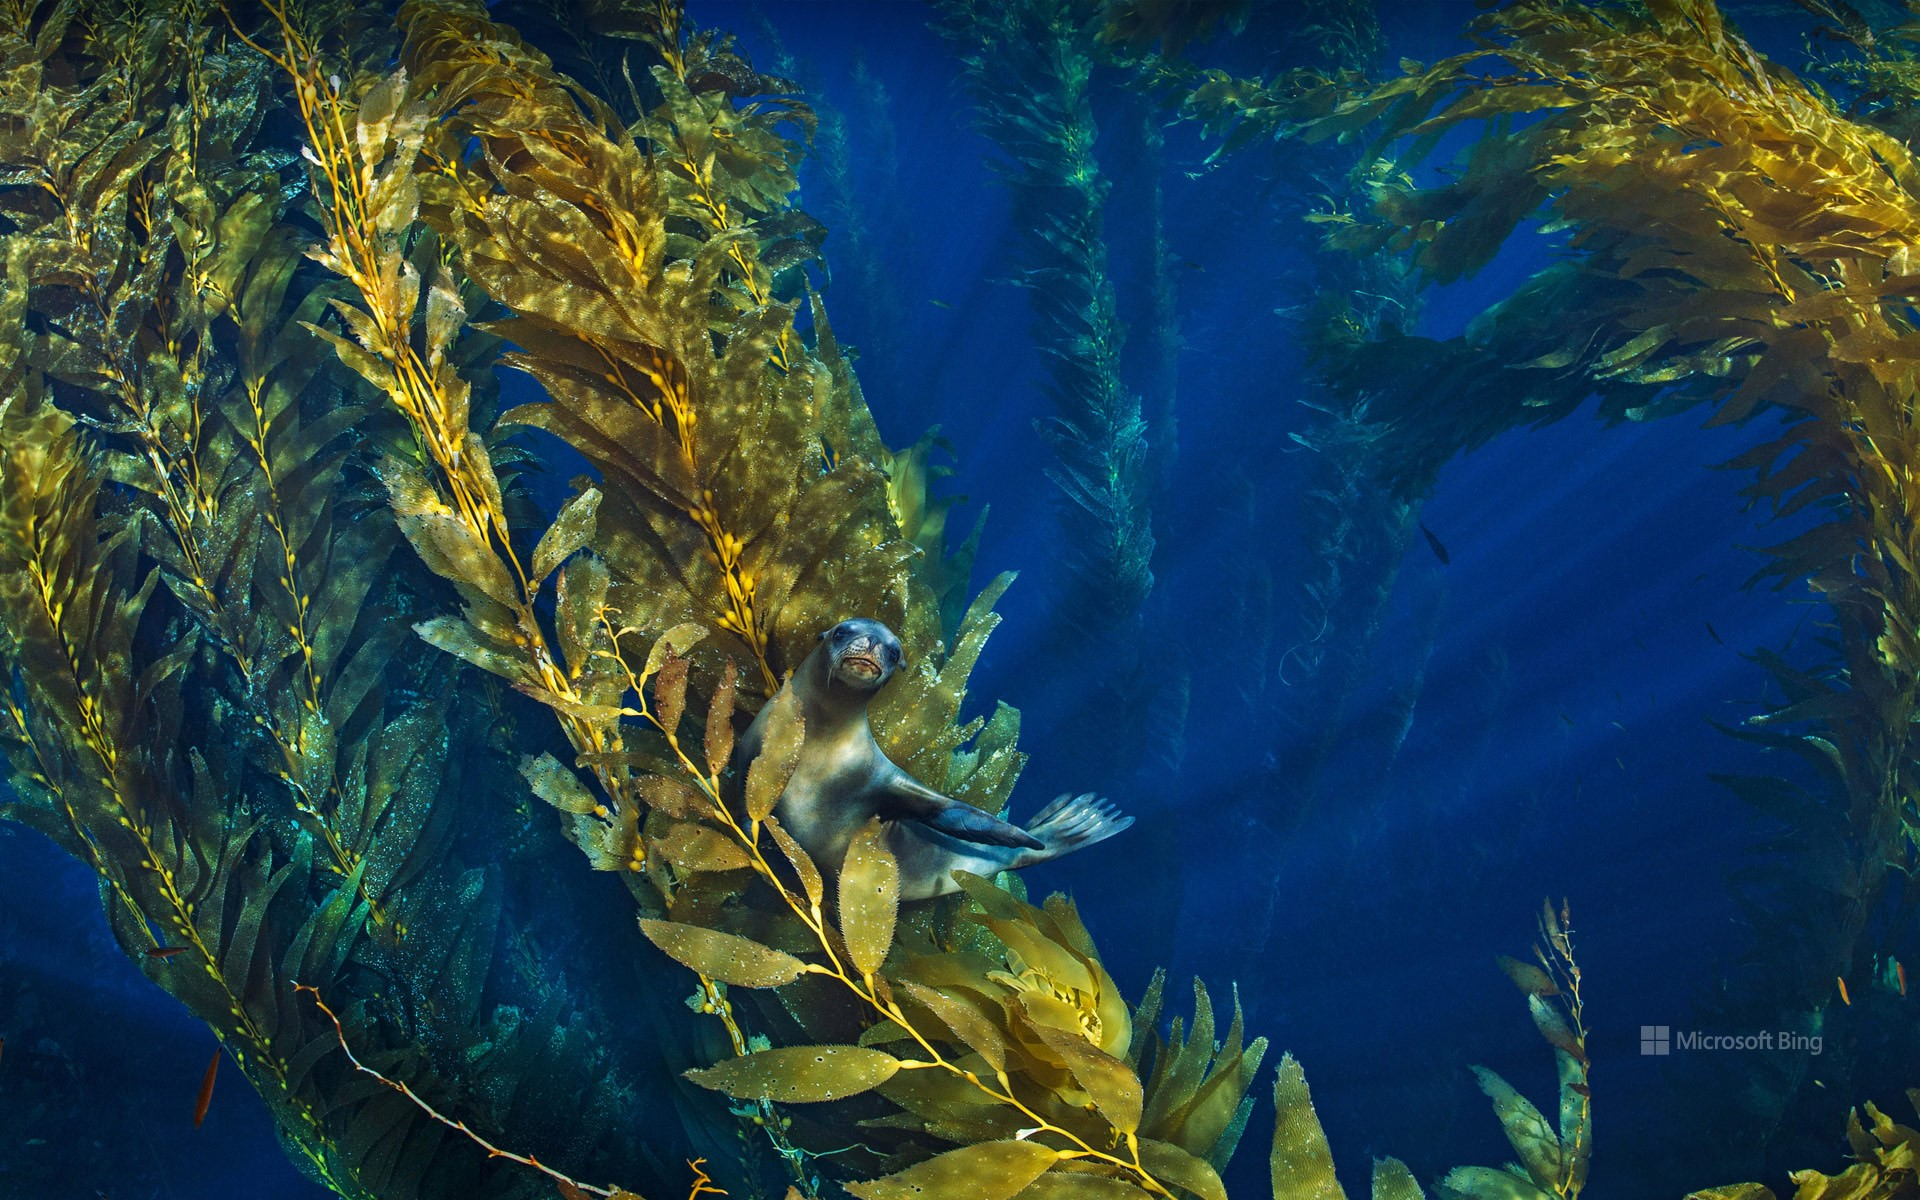 California sea lion in a forest of giant kelp near the Channel Islands of California, USA